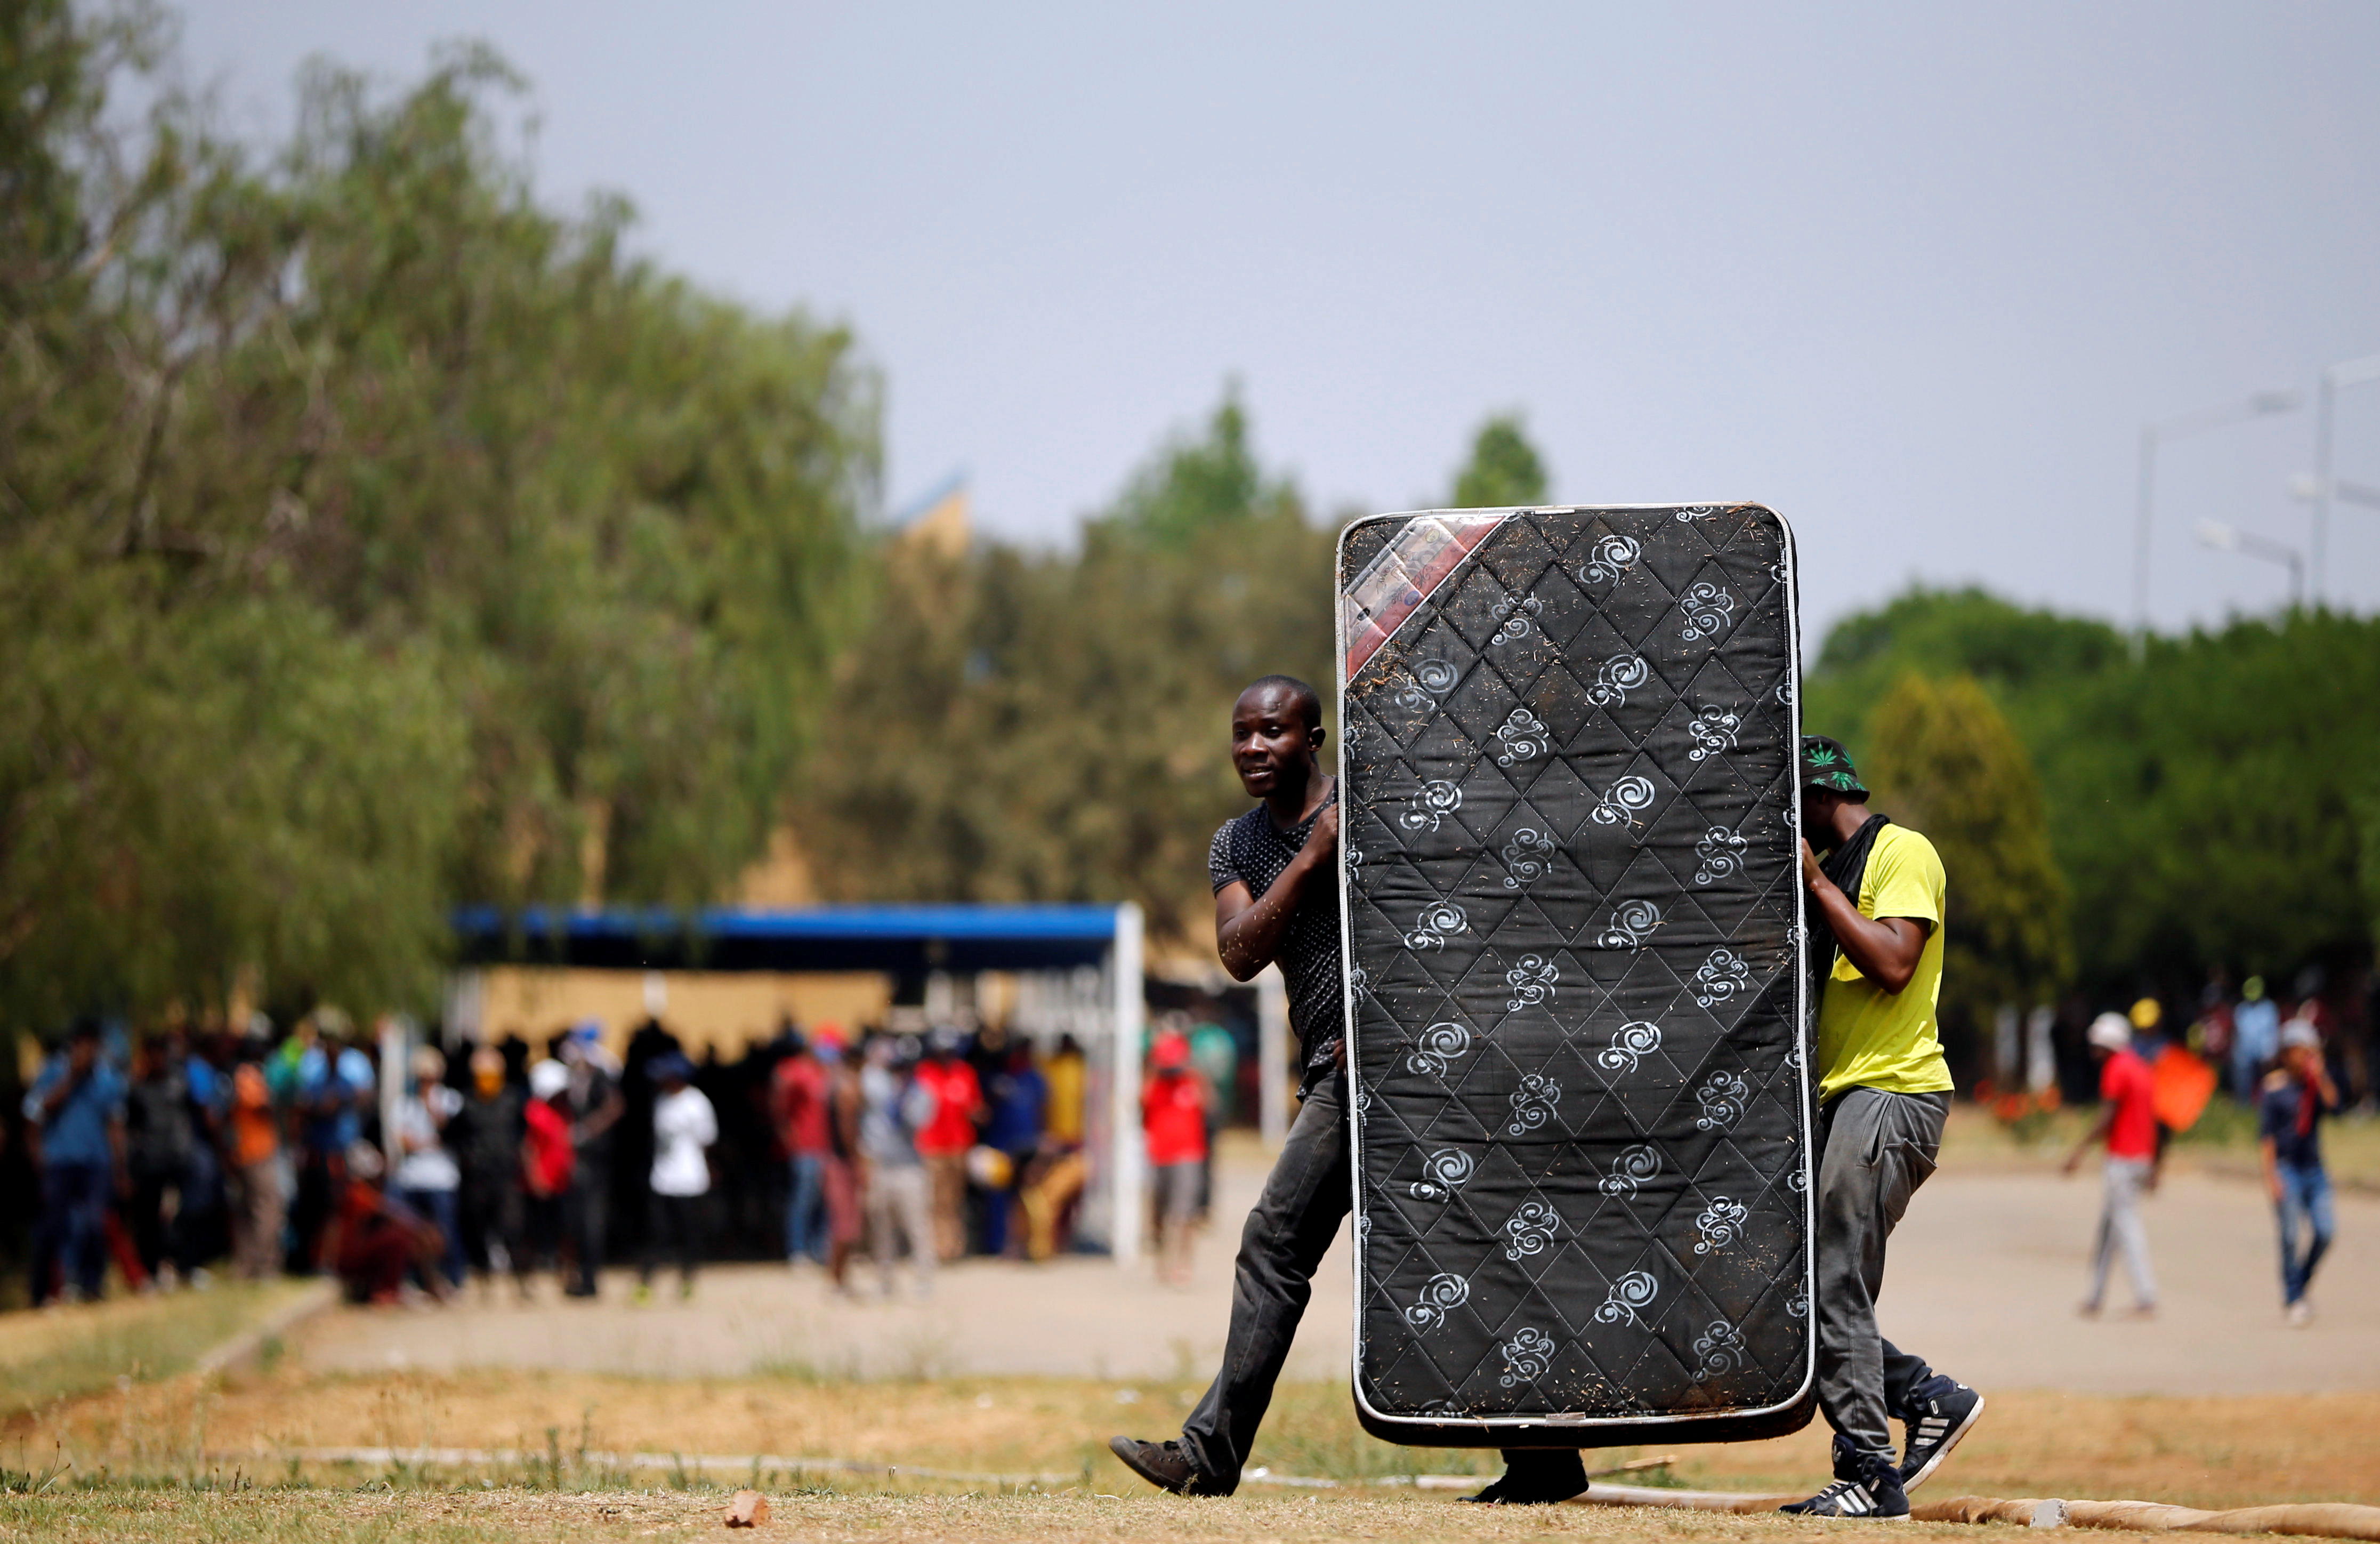 Protesters use a mattress as a cover during clashes with police officers, as students demand free education, at the Vaal University of Technology in Vanderbijlpark, South of Johannesburg, South Africa, October 13, 2016.